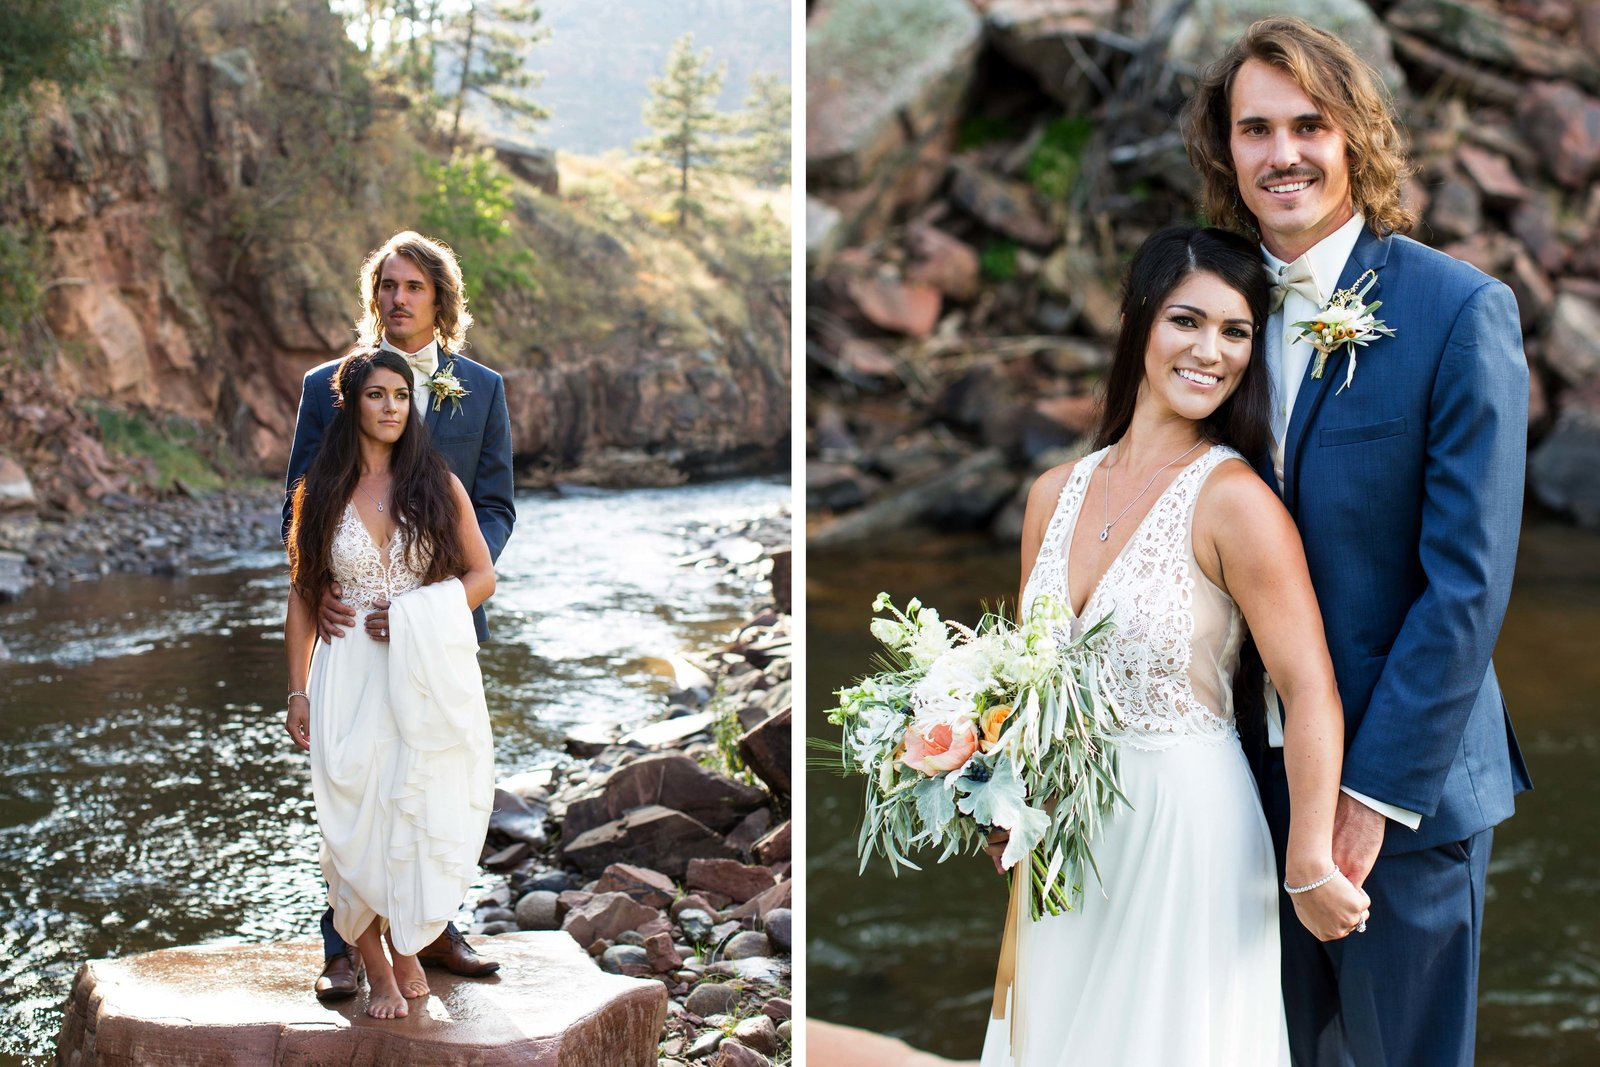 Jessi-Zach-Photography-Colorado-Mountain-Wedding-Photographers-Purple-Summer-Events-River-Bend_11